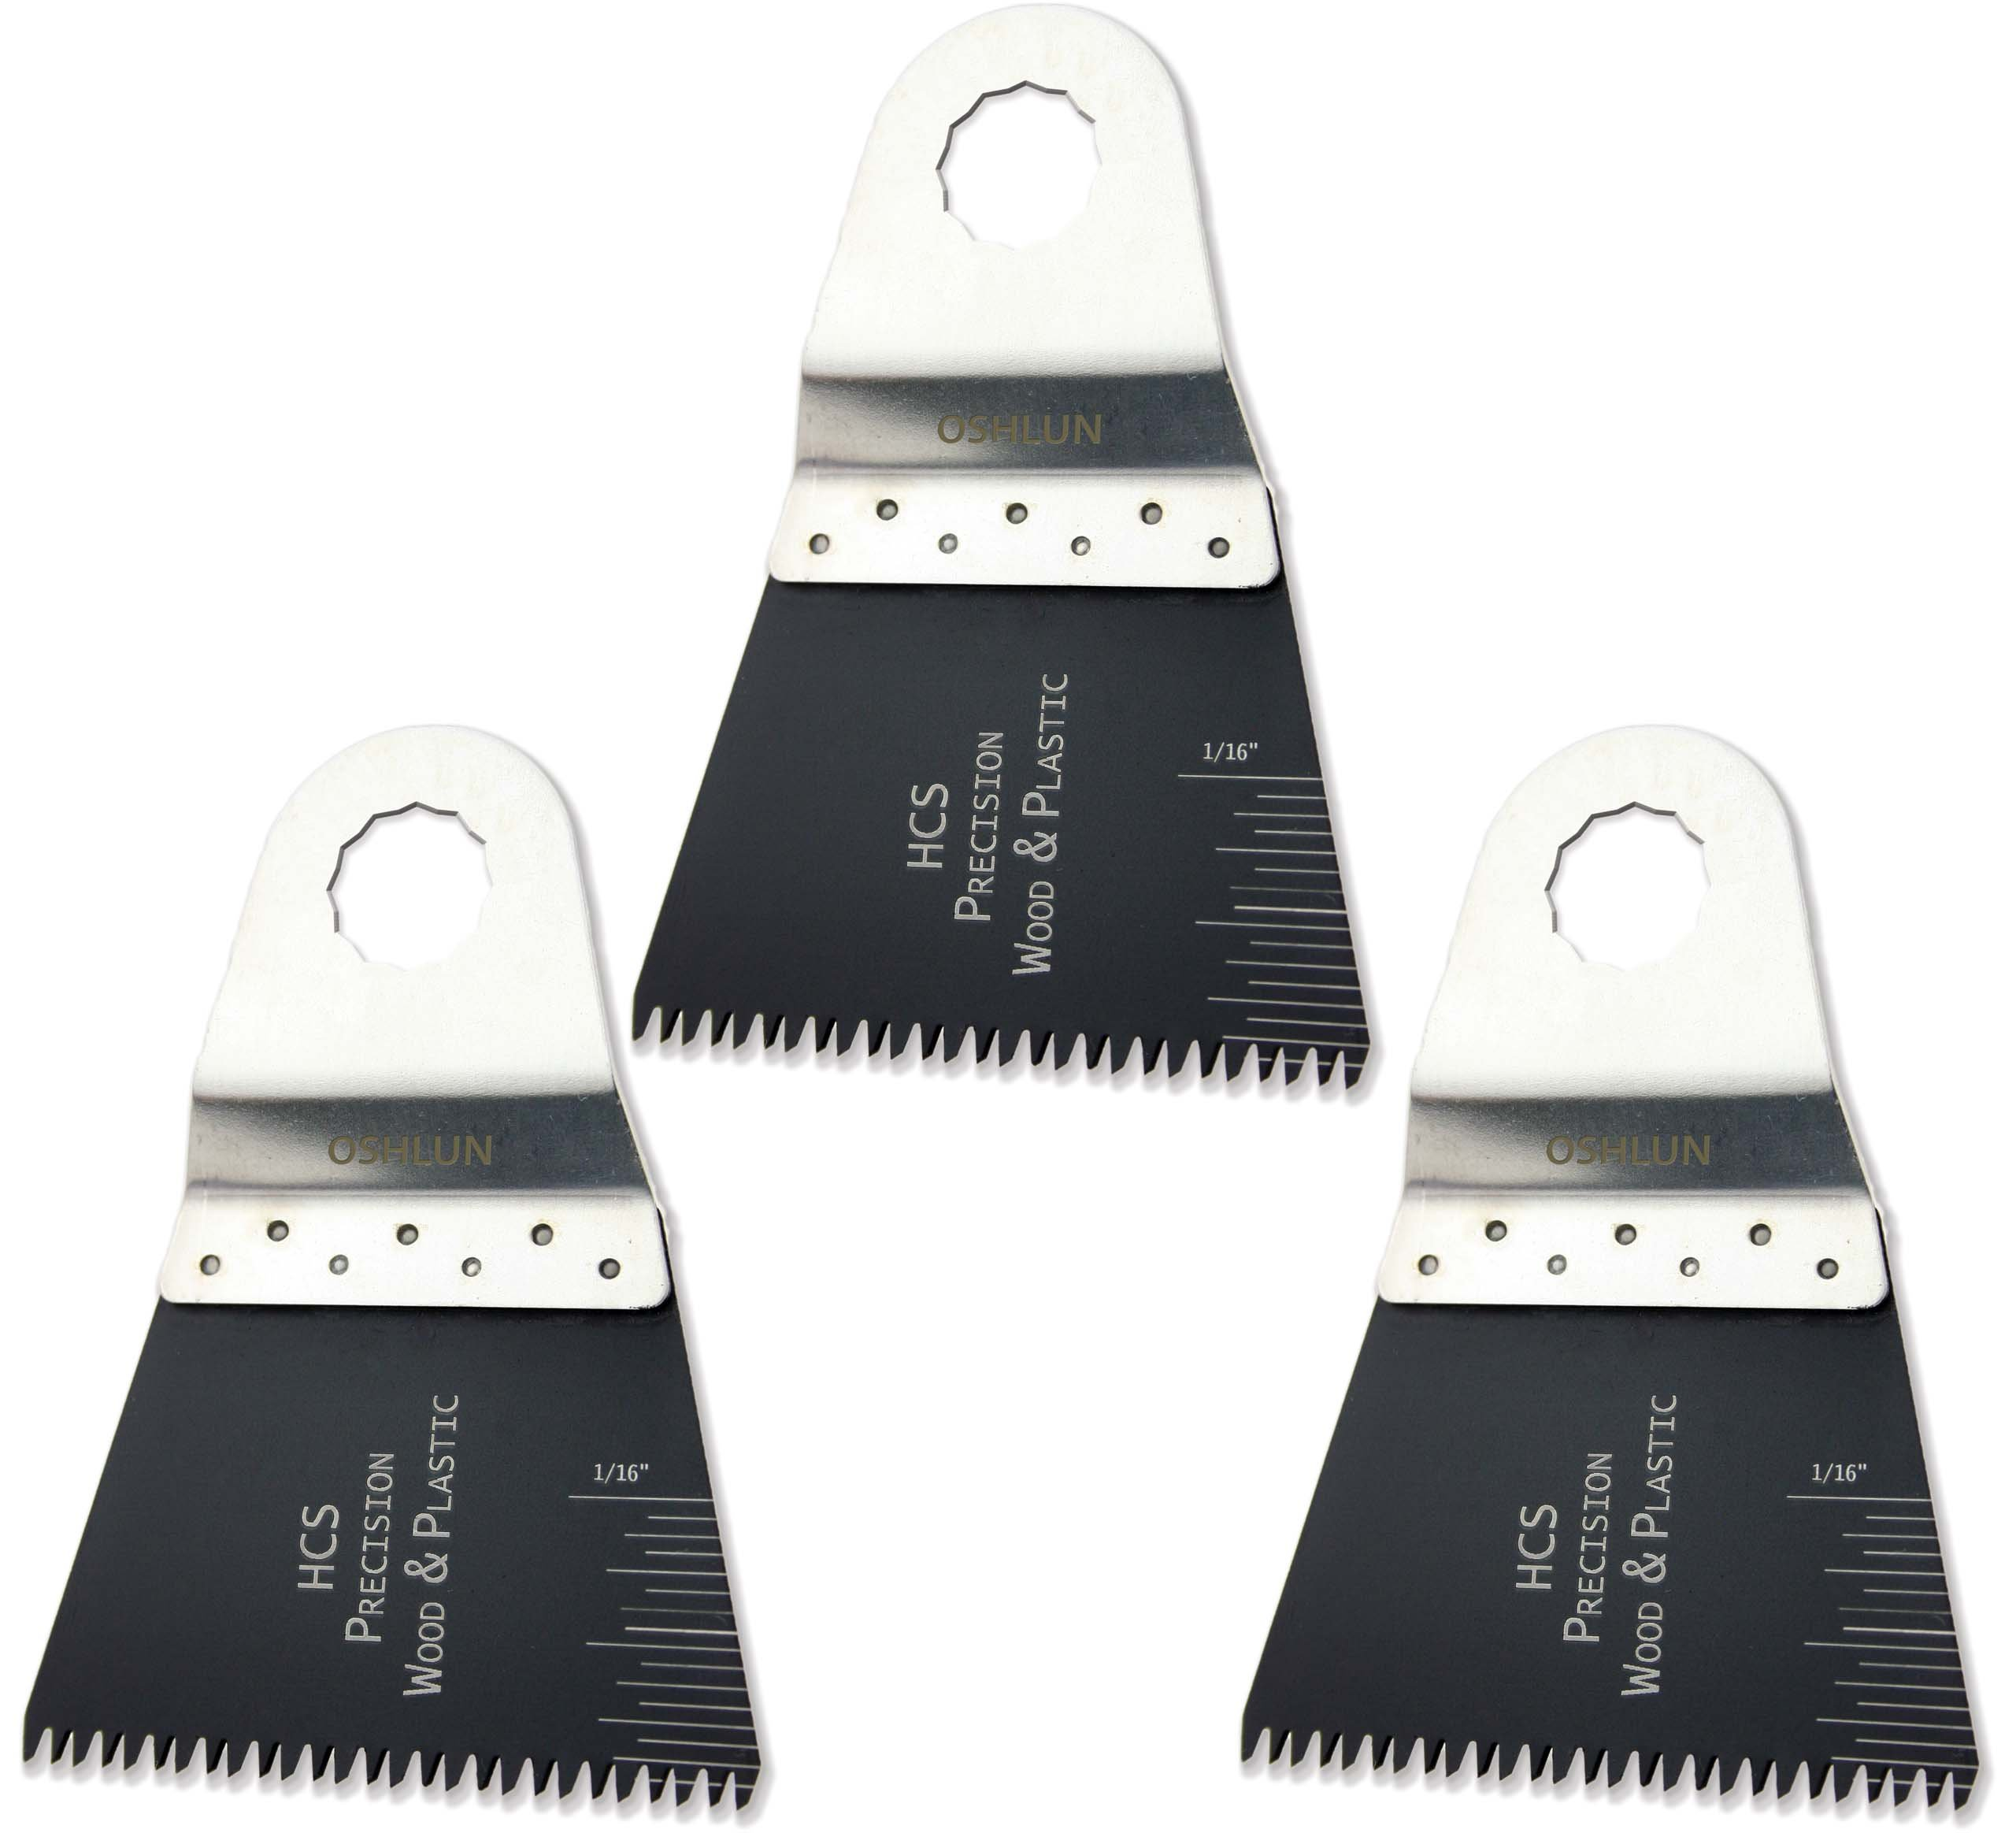 Oshlun MMR-1103 2-2/3-Inch Precision Japan HCS Oscillating Tool Blade for Rockwell SoniCrafter, 3-Pack